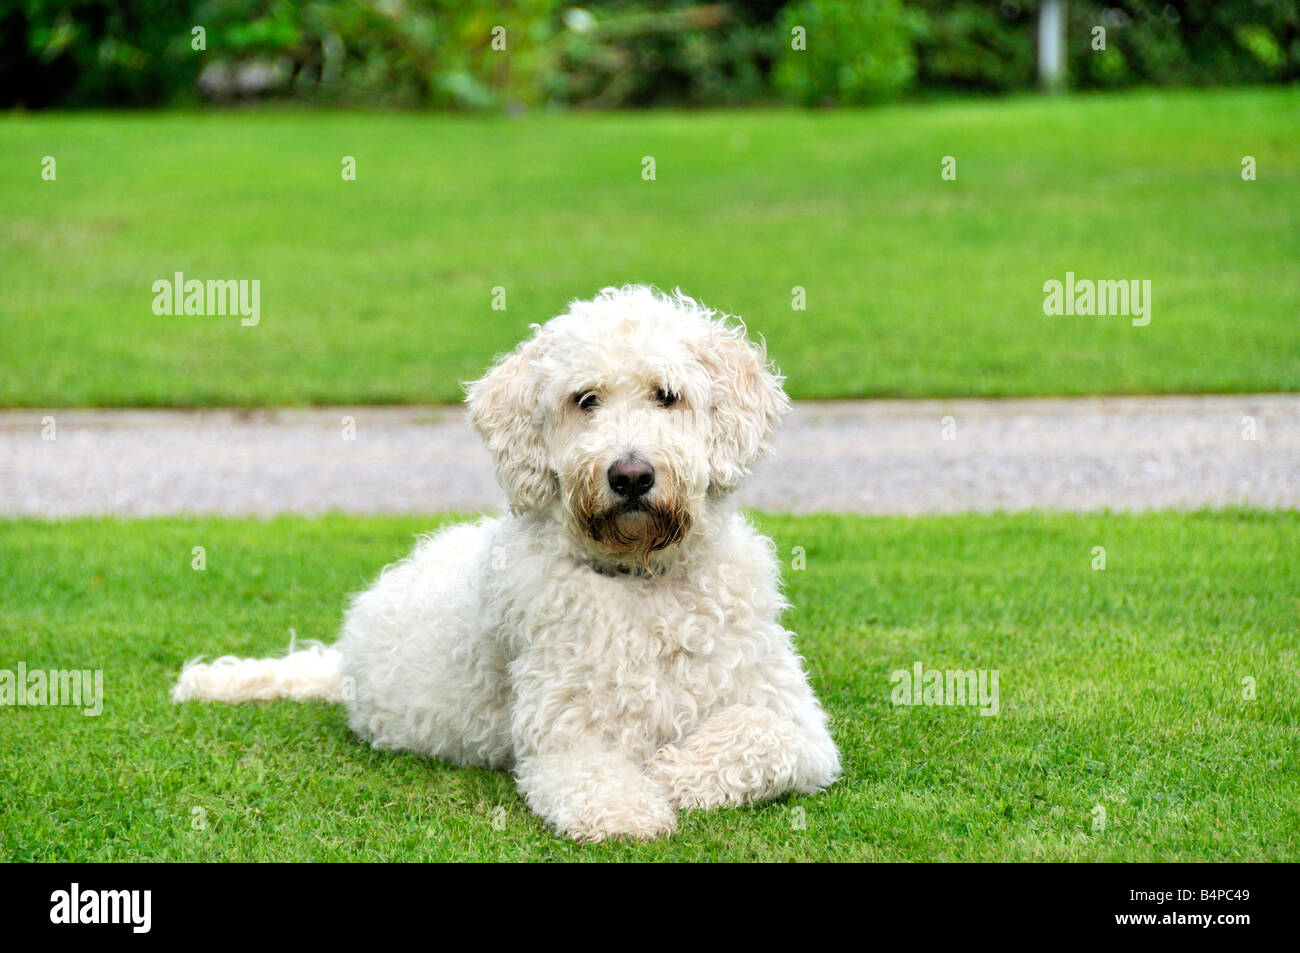 White goldendoodle dog sitting lying outside on grass Stock